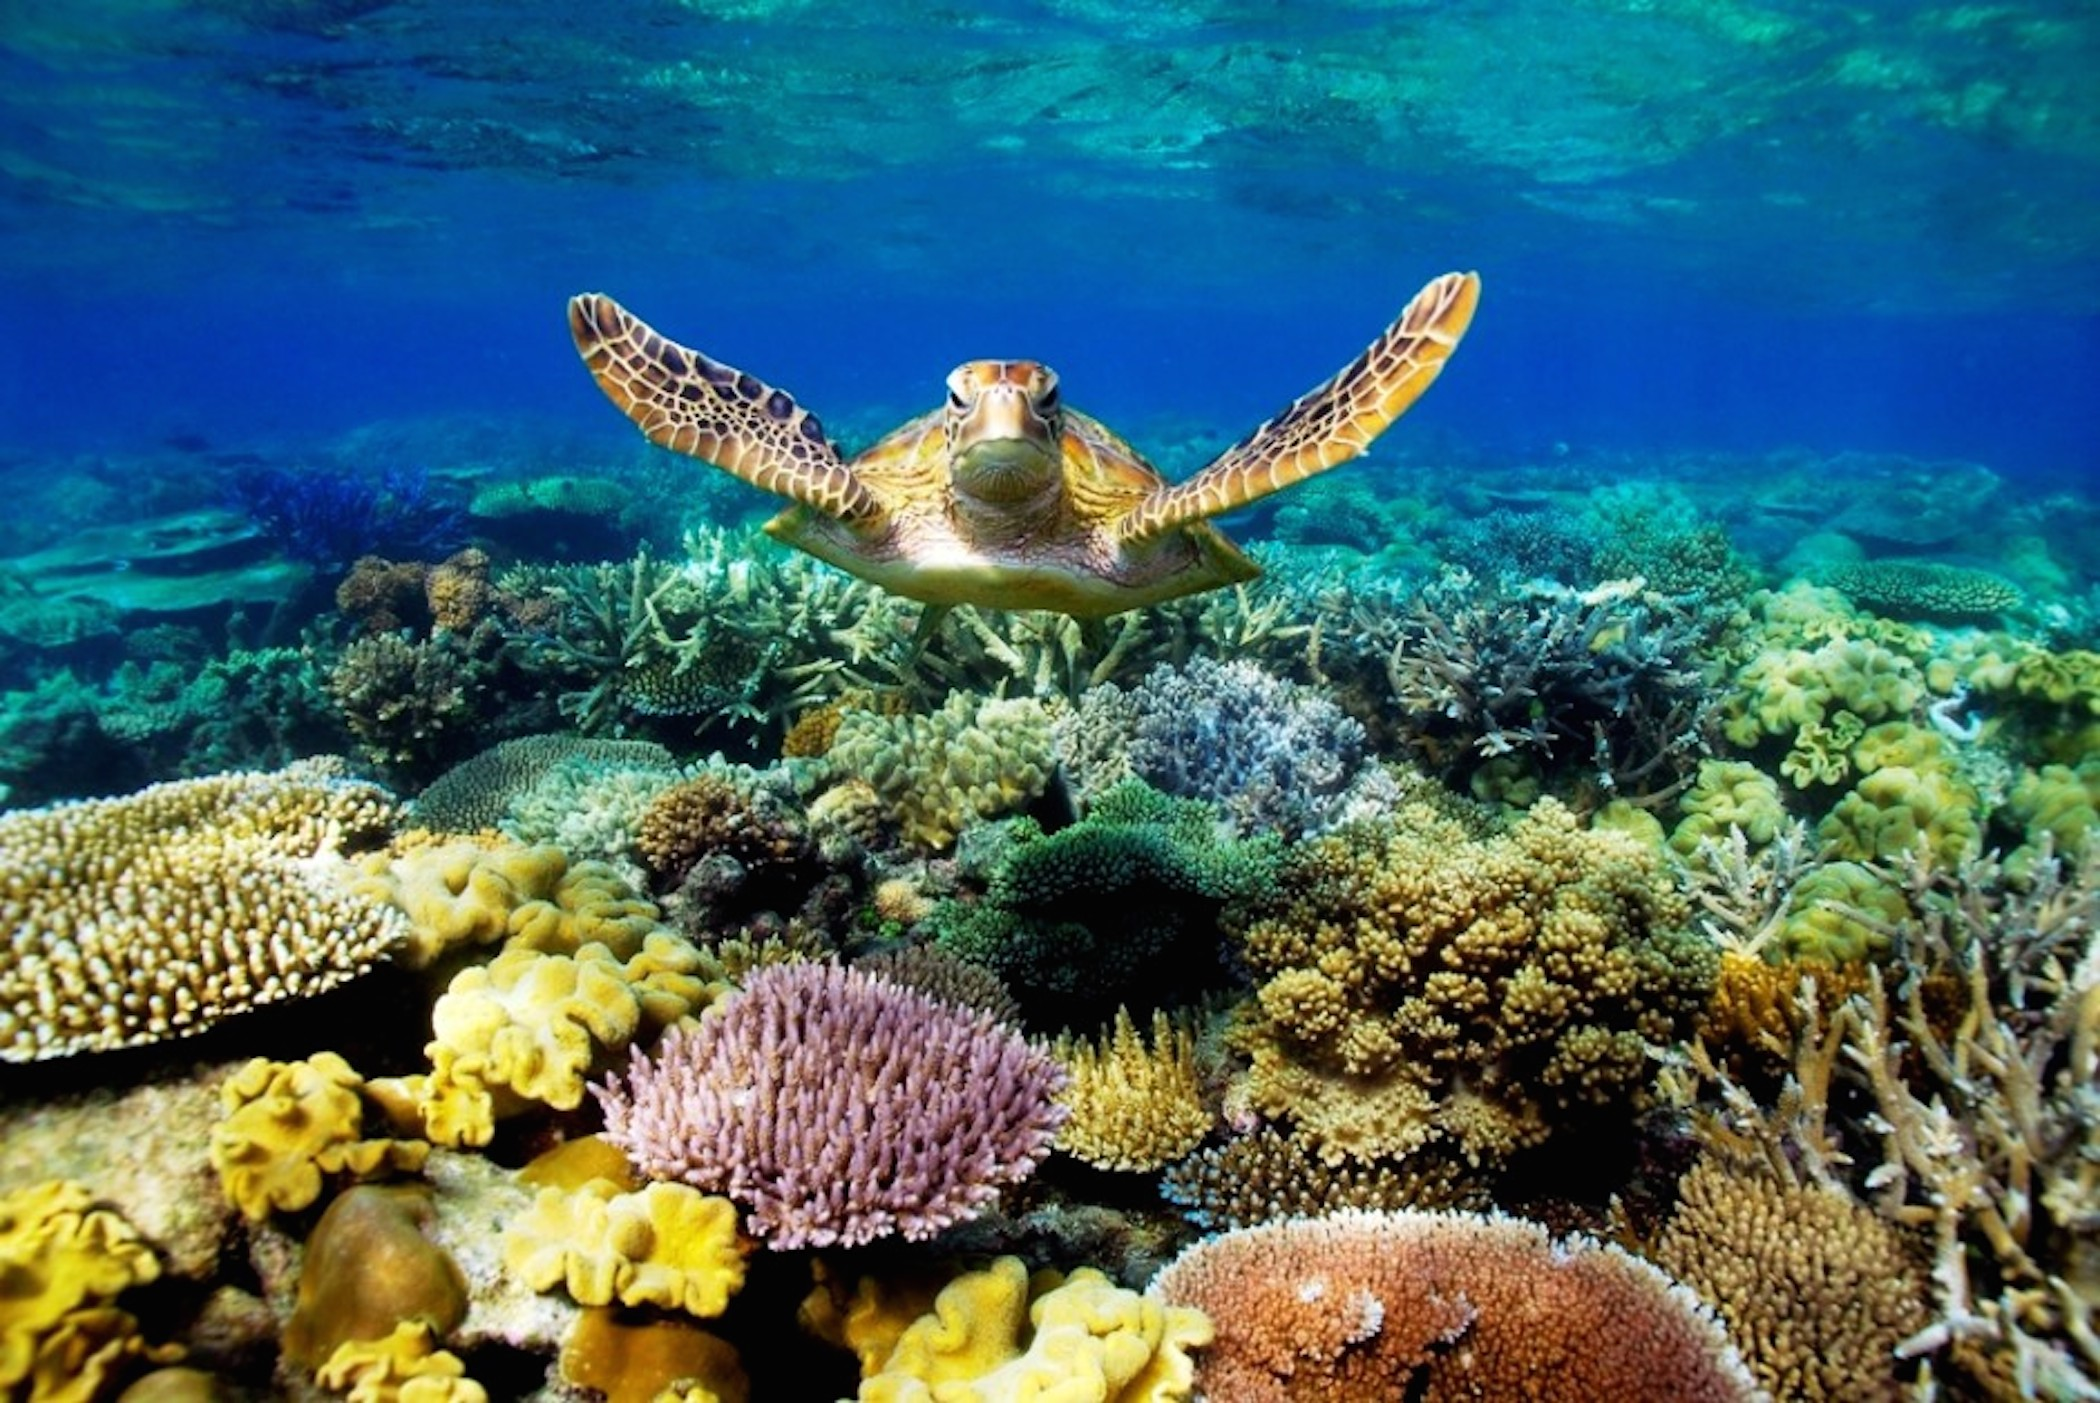 Great-Barrier-Reef-Turtle-Wallpaper.jpg